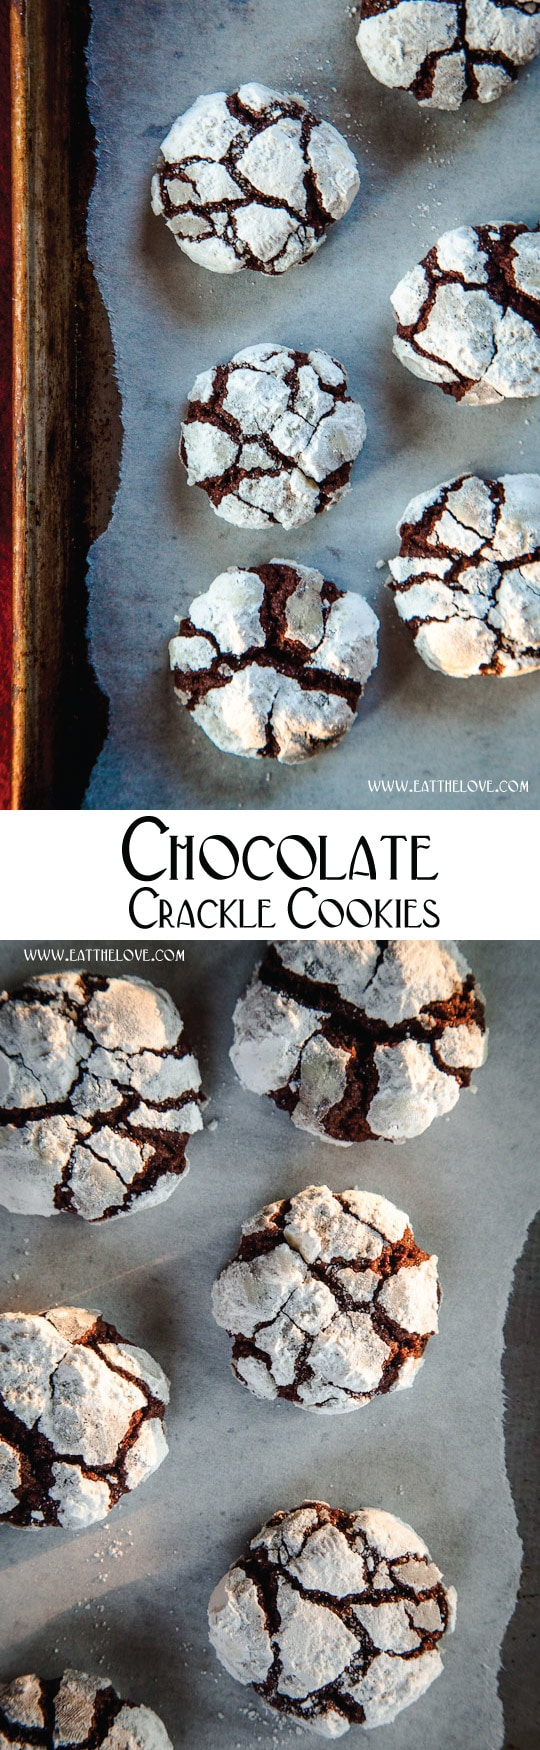 Chocolate Crackle Cookies or Chocolate Crinkle Cookies are the best holiday cookie! Photo and recipe by Irvin Lin of Eat the Love.